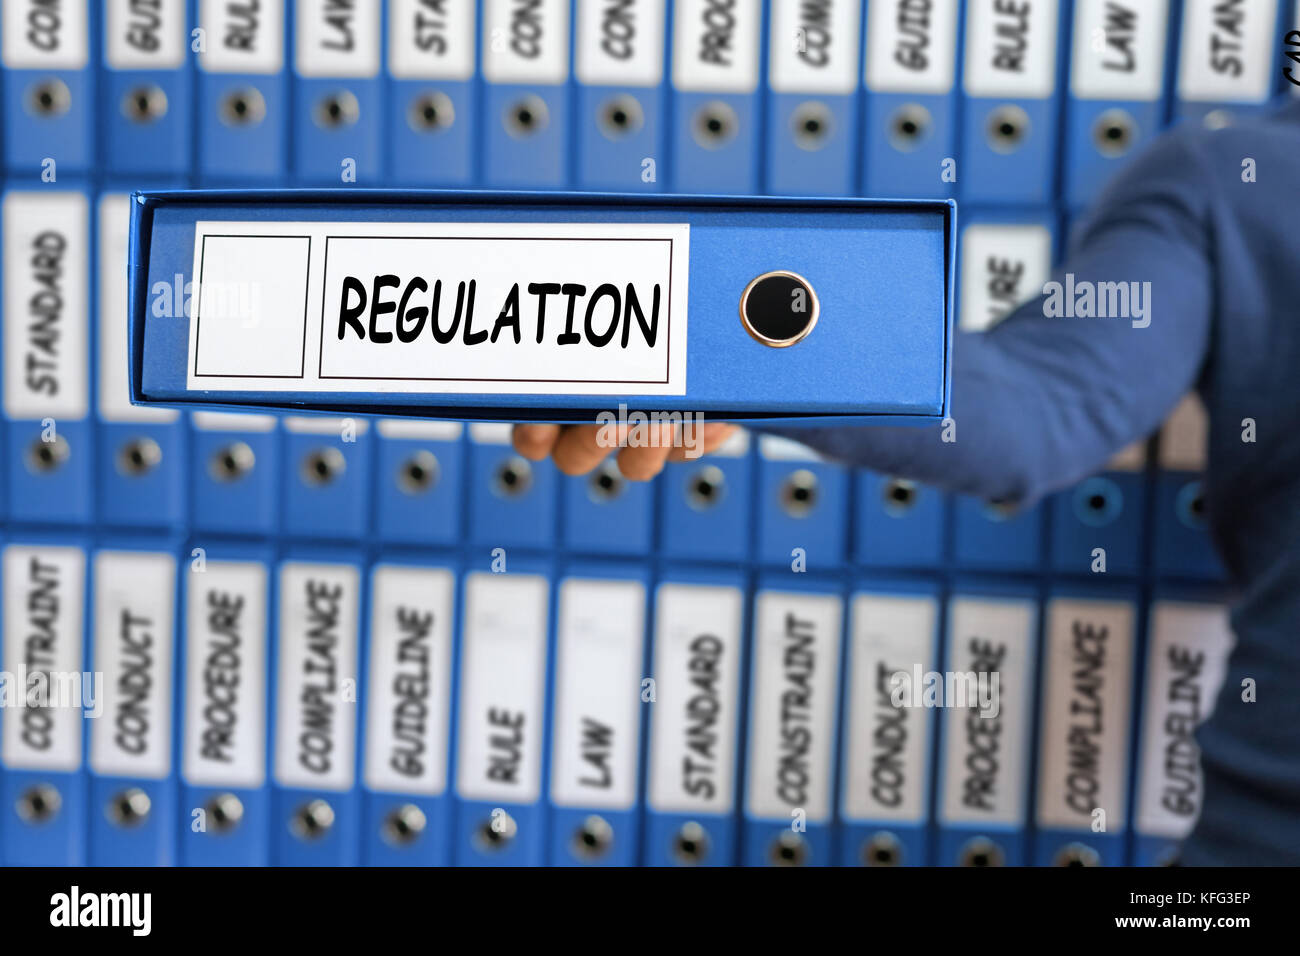 Regulation Business Concept. Young man holding ring binder. - Stock Image